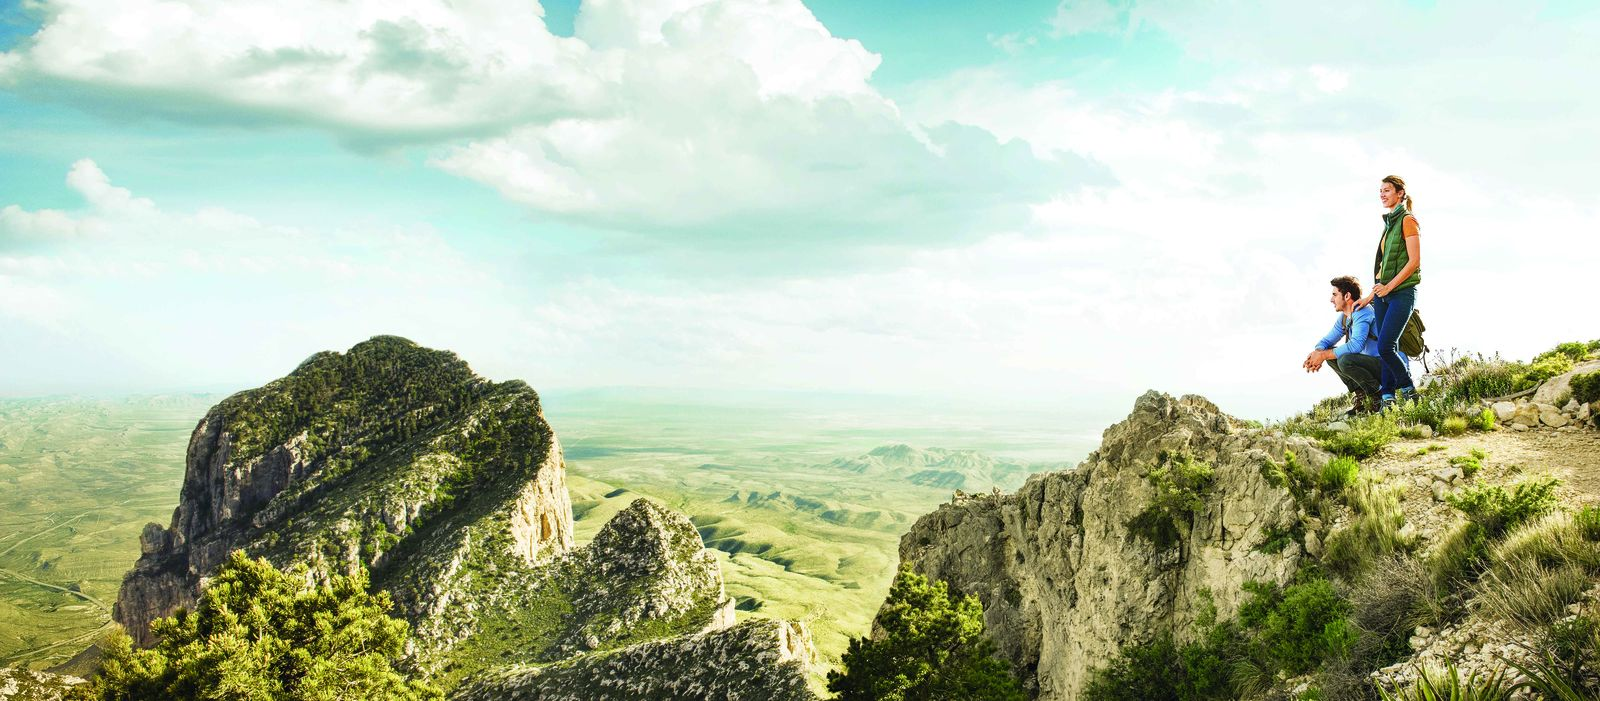 Wandern im Guadalupe Mountains Nationalpark in Texas